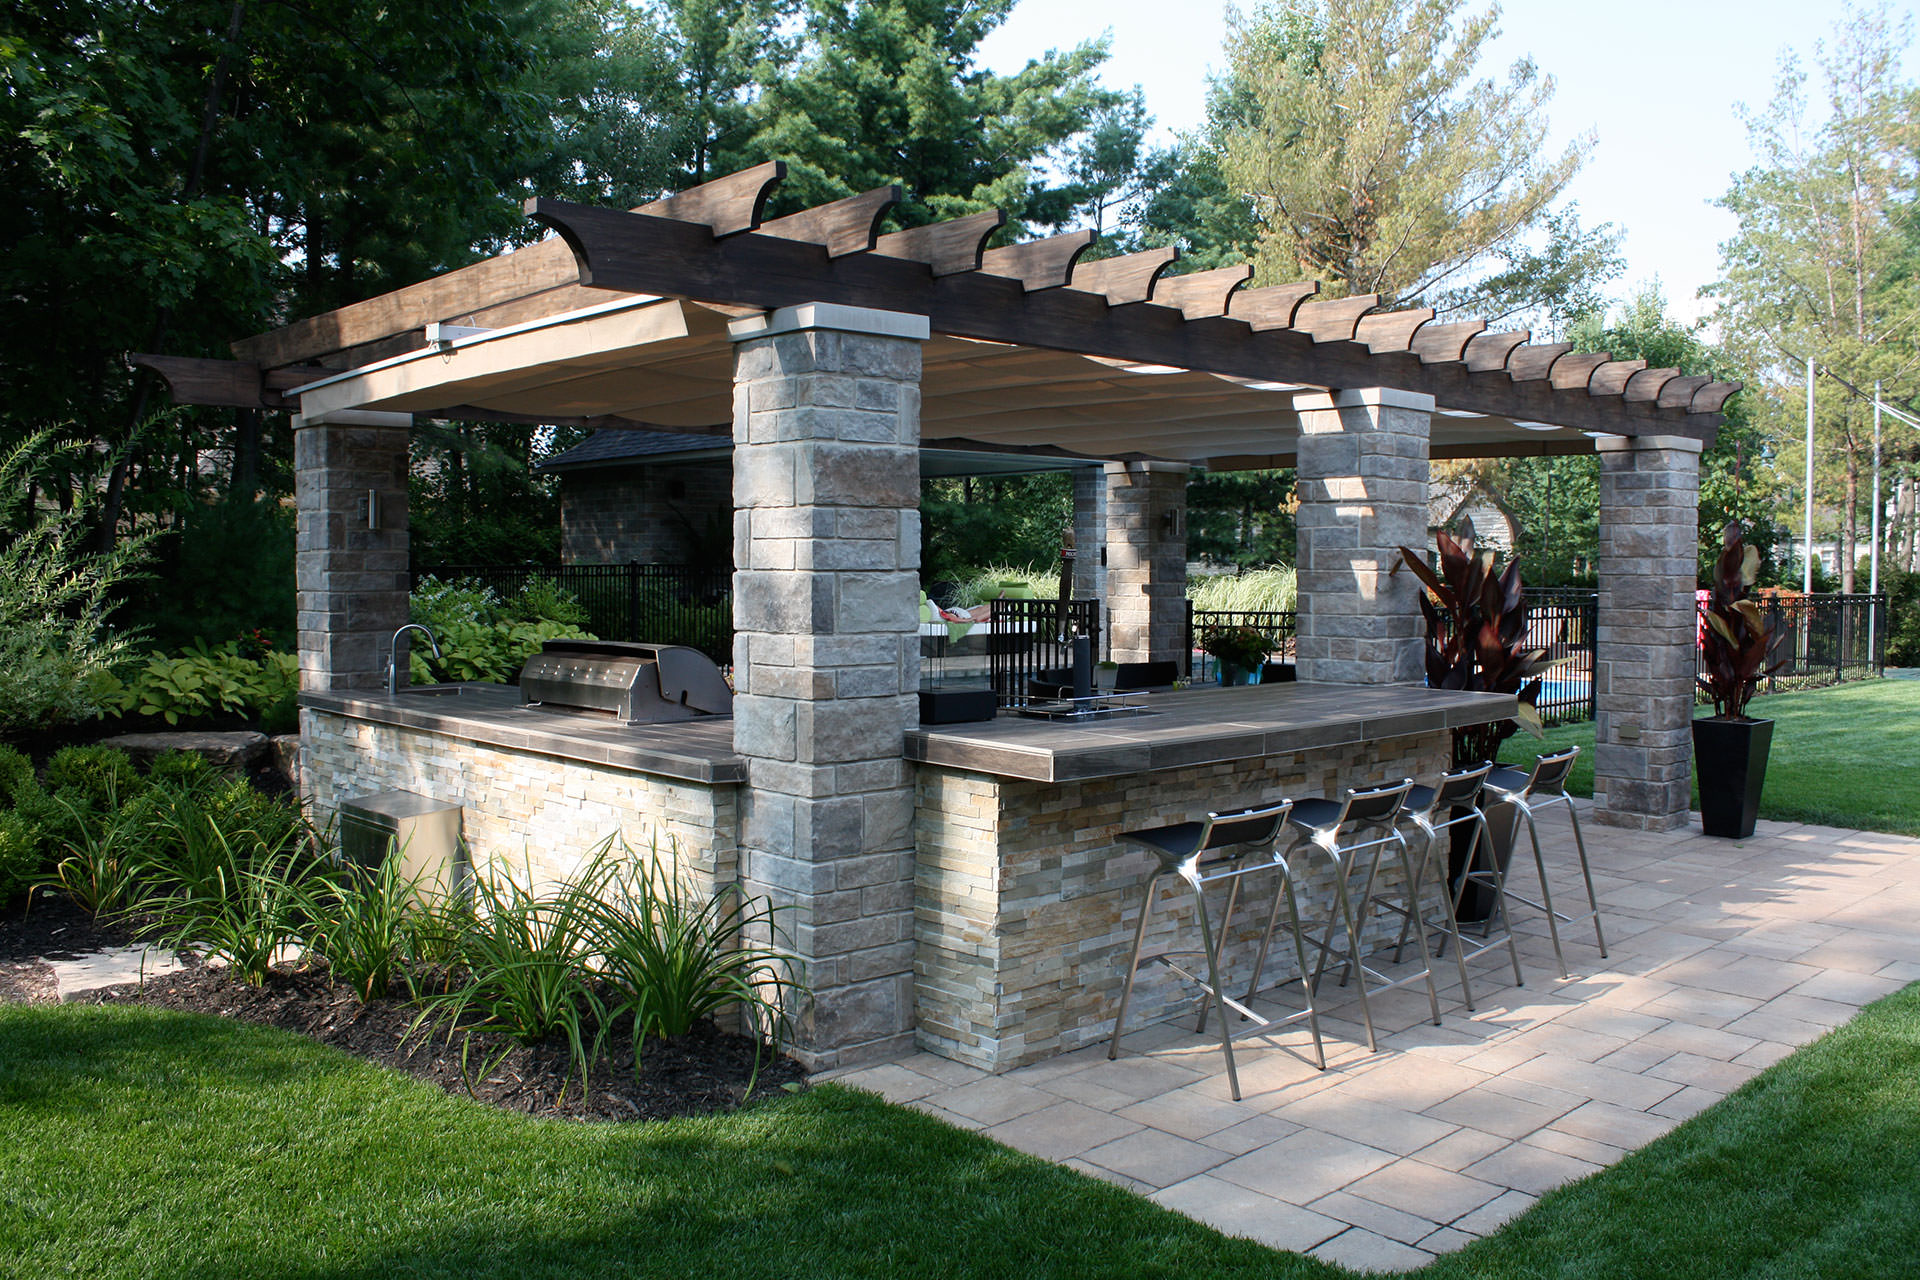 Retractable outdoor kitchen cover in terrebonne shadefx for Outdoor kitchen pergola ideas